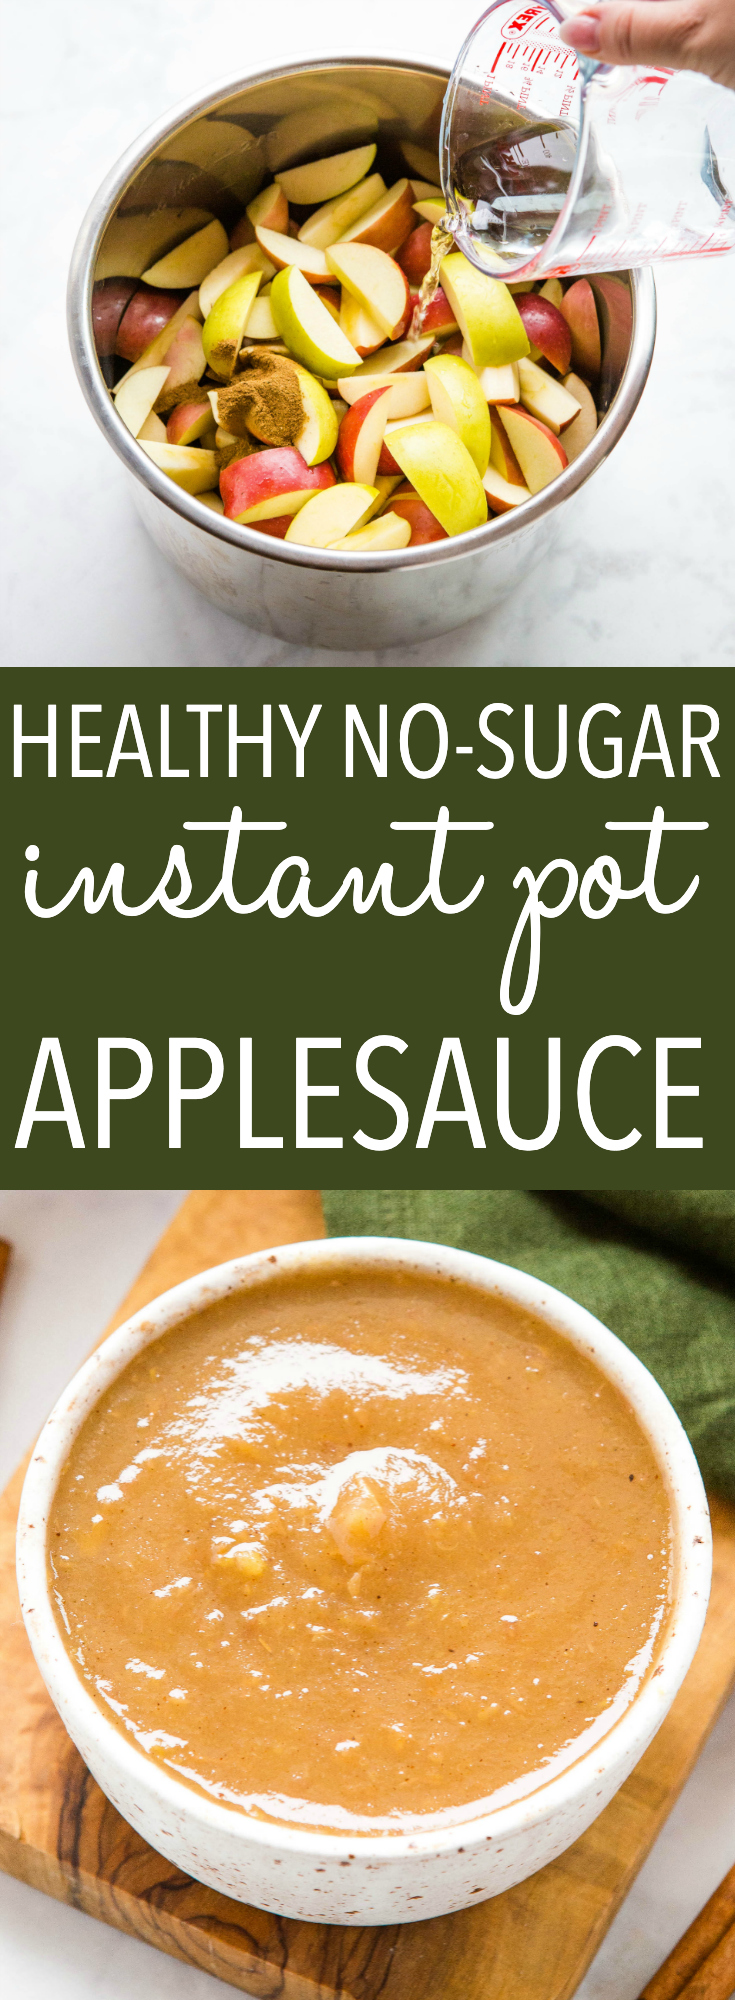 This Healthy Instant Pot Applesauce is the easiest homemade applesauce recipe you'll ever make with only 2 ingredients! Ready in 20 minutes and no sugar added! Recipe from thebusybaker.ca! #applesauce #apples #instantpot #pressurecooker #harvest #homemade via @busybakerblog